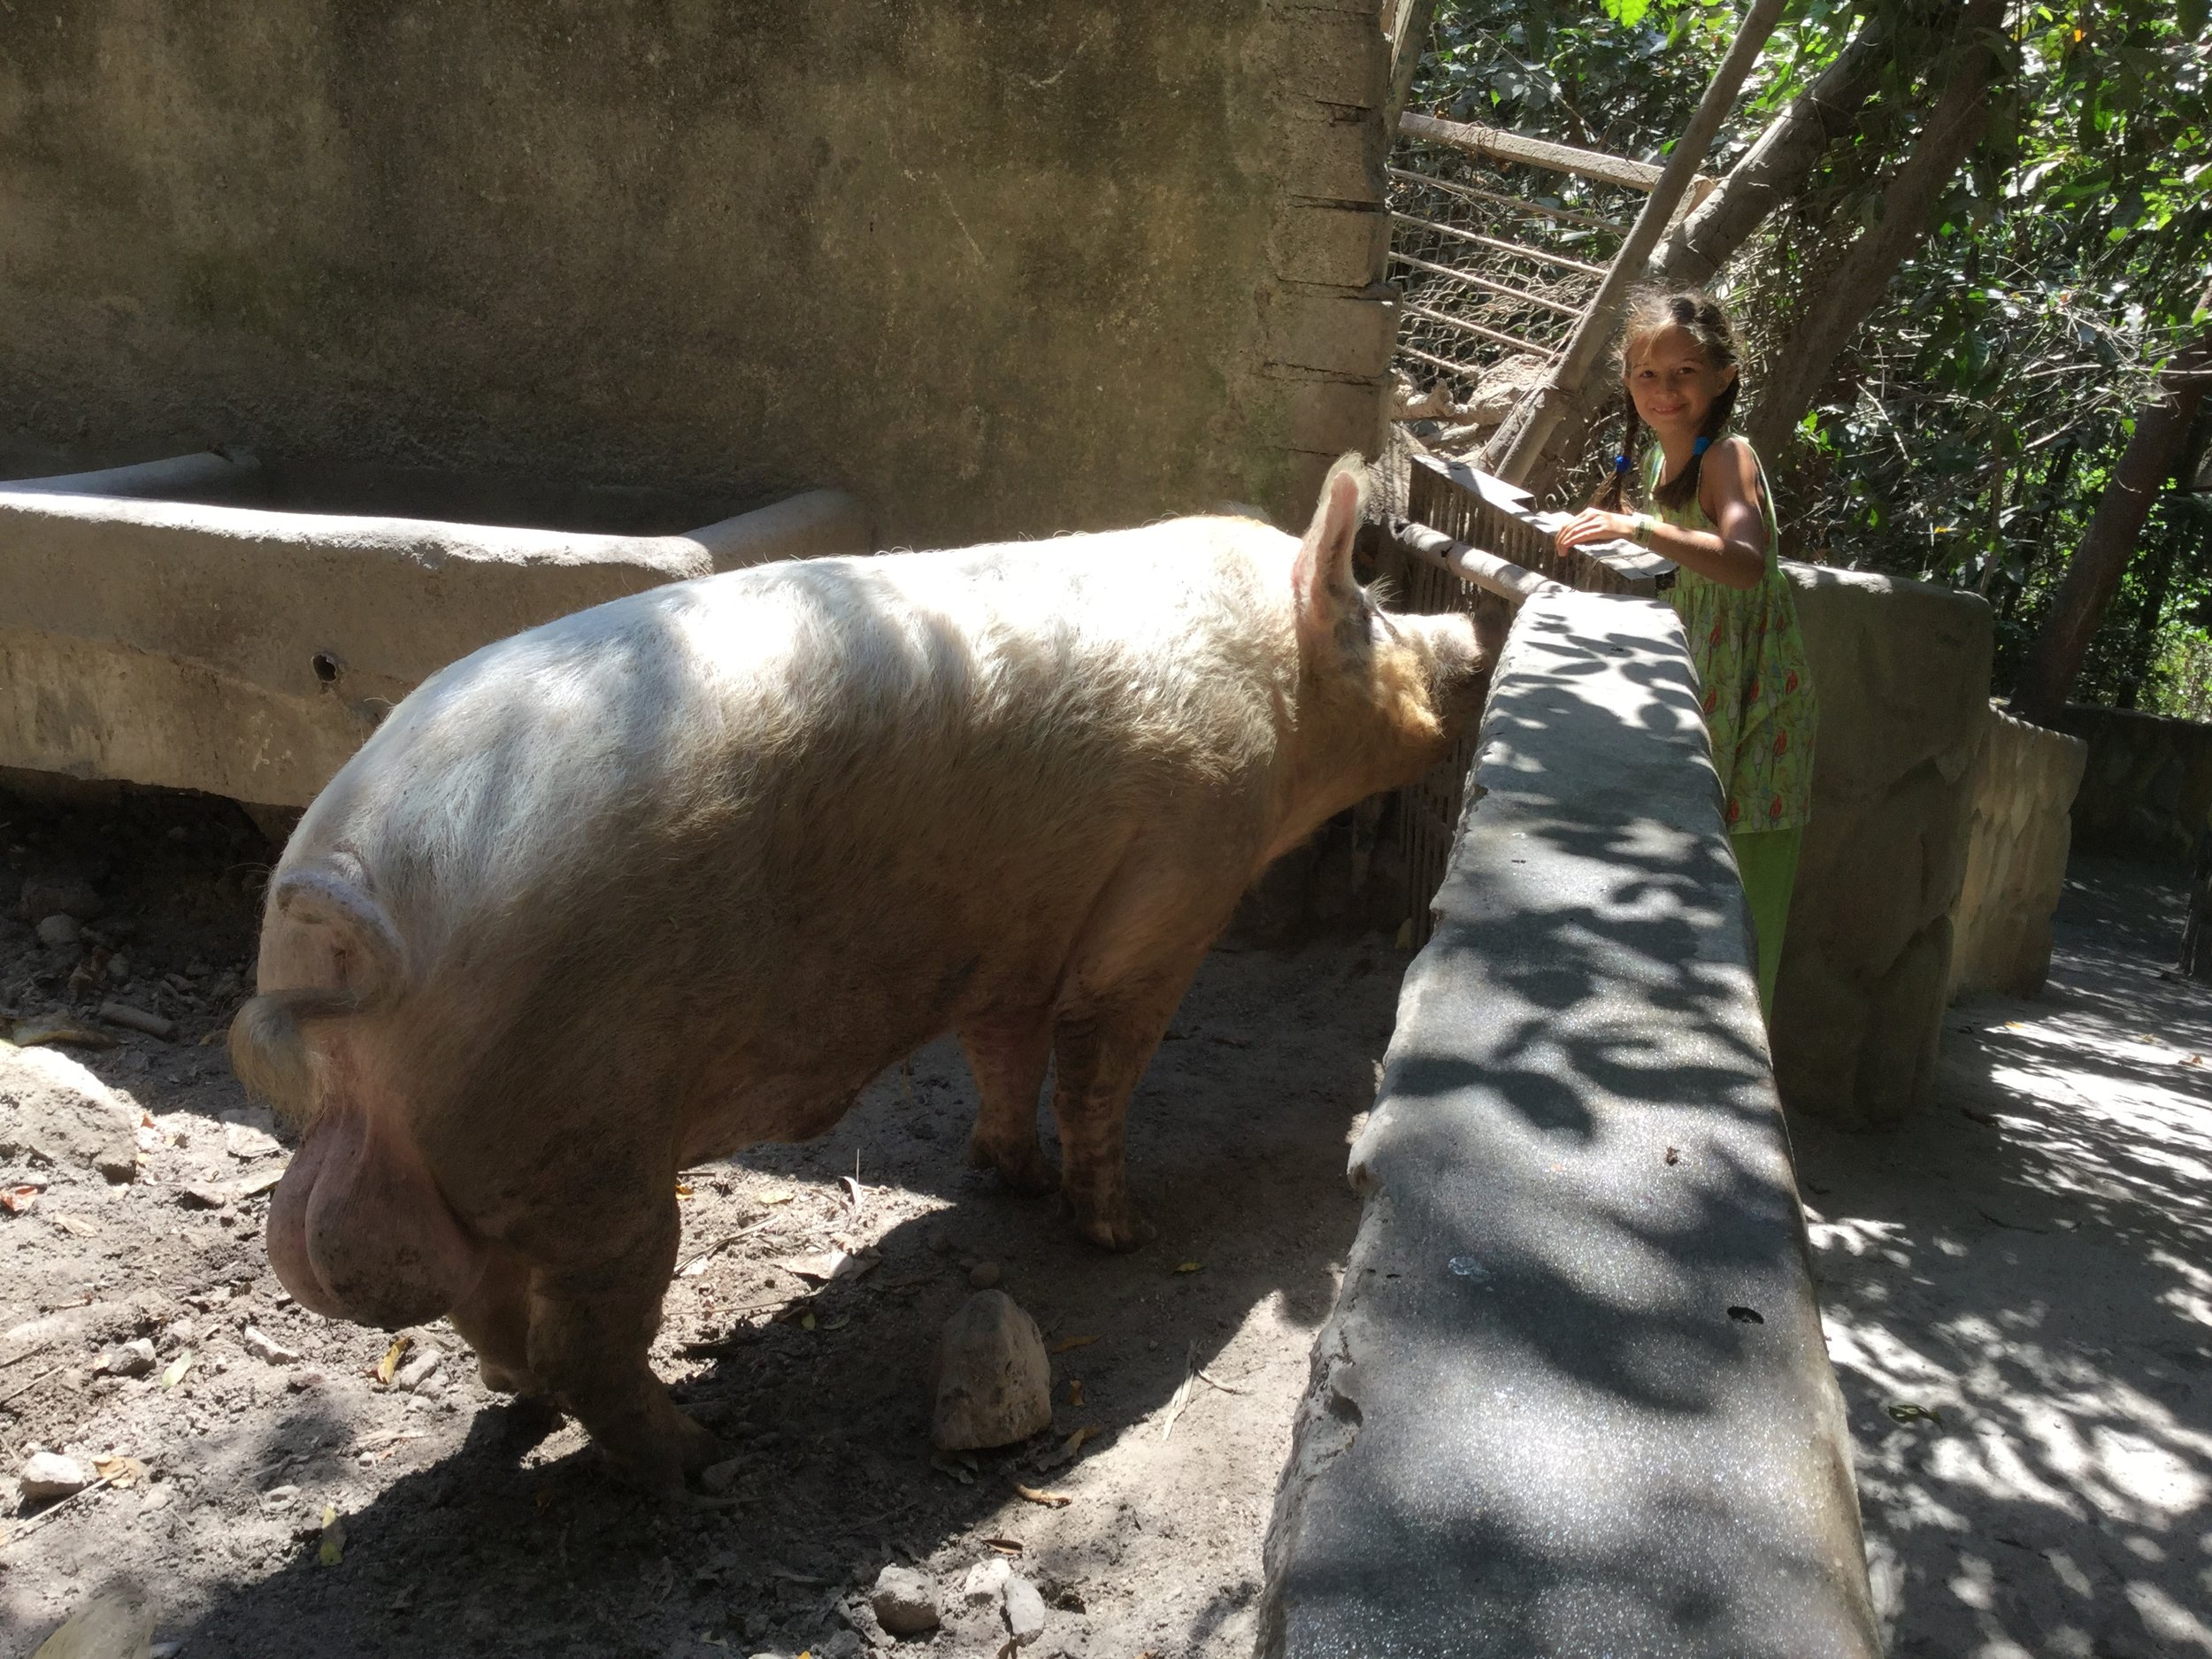 There are also farm animals, like these very large pigs.